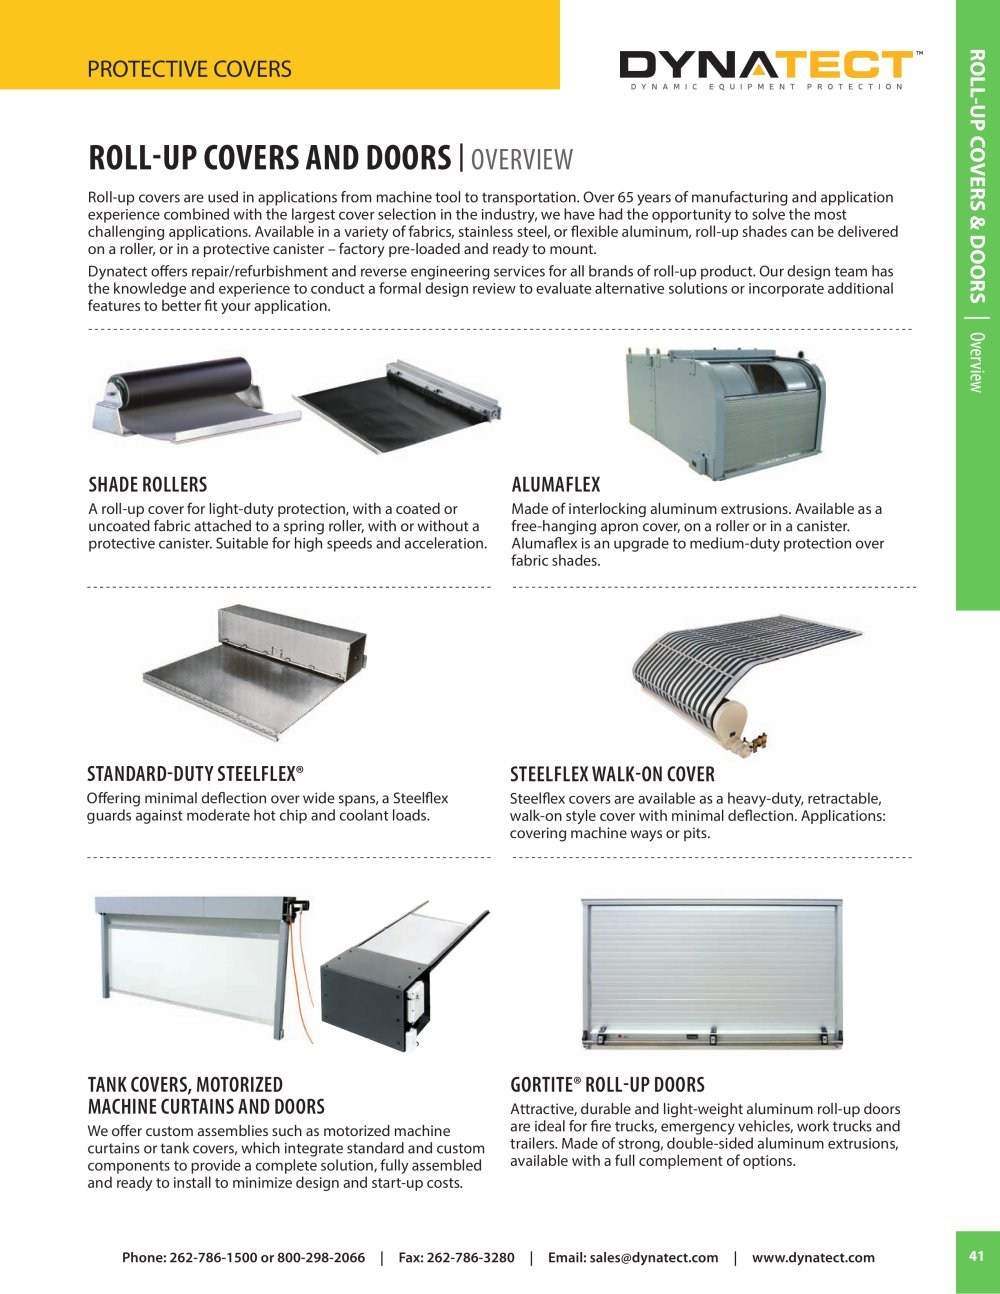 Roll Up Covers \u0026 Doors Catalog Section - 1 / 20 Pages  sc 1 st  Catalogues Directindustry & Roll Up Covers \u0026 Doors Catalog Section - Dynatect Manufacturing ...